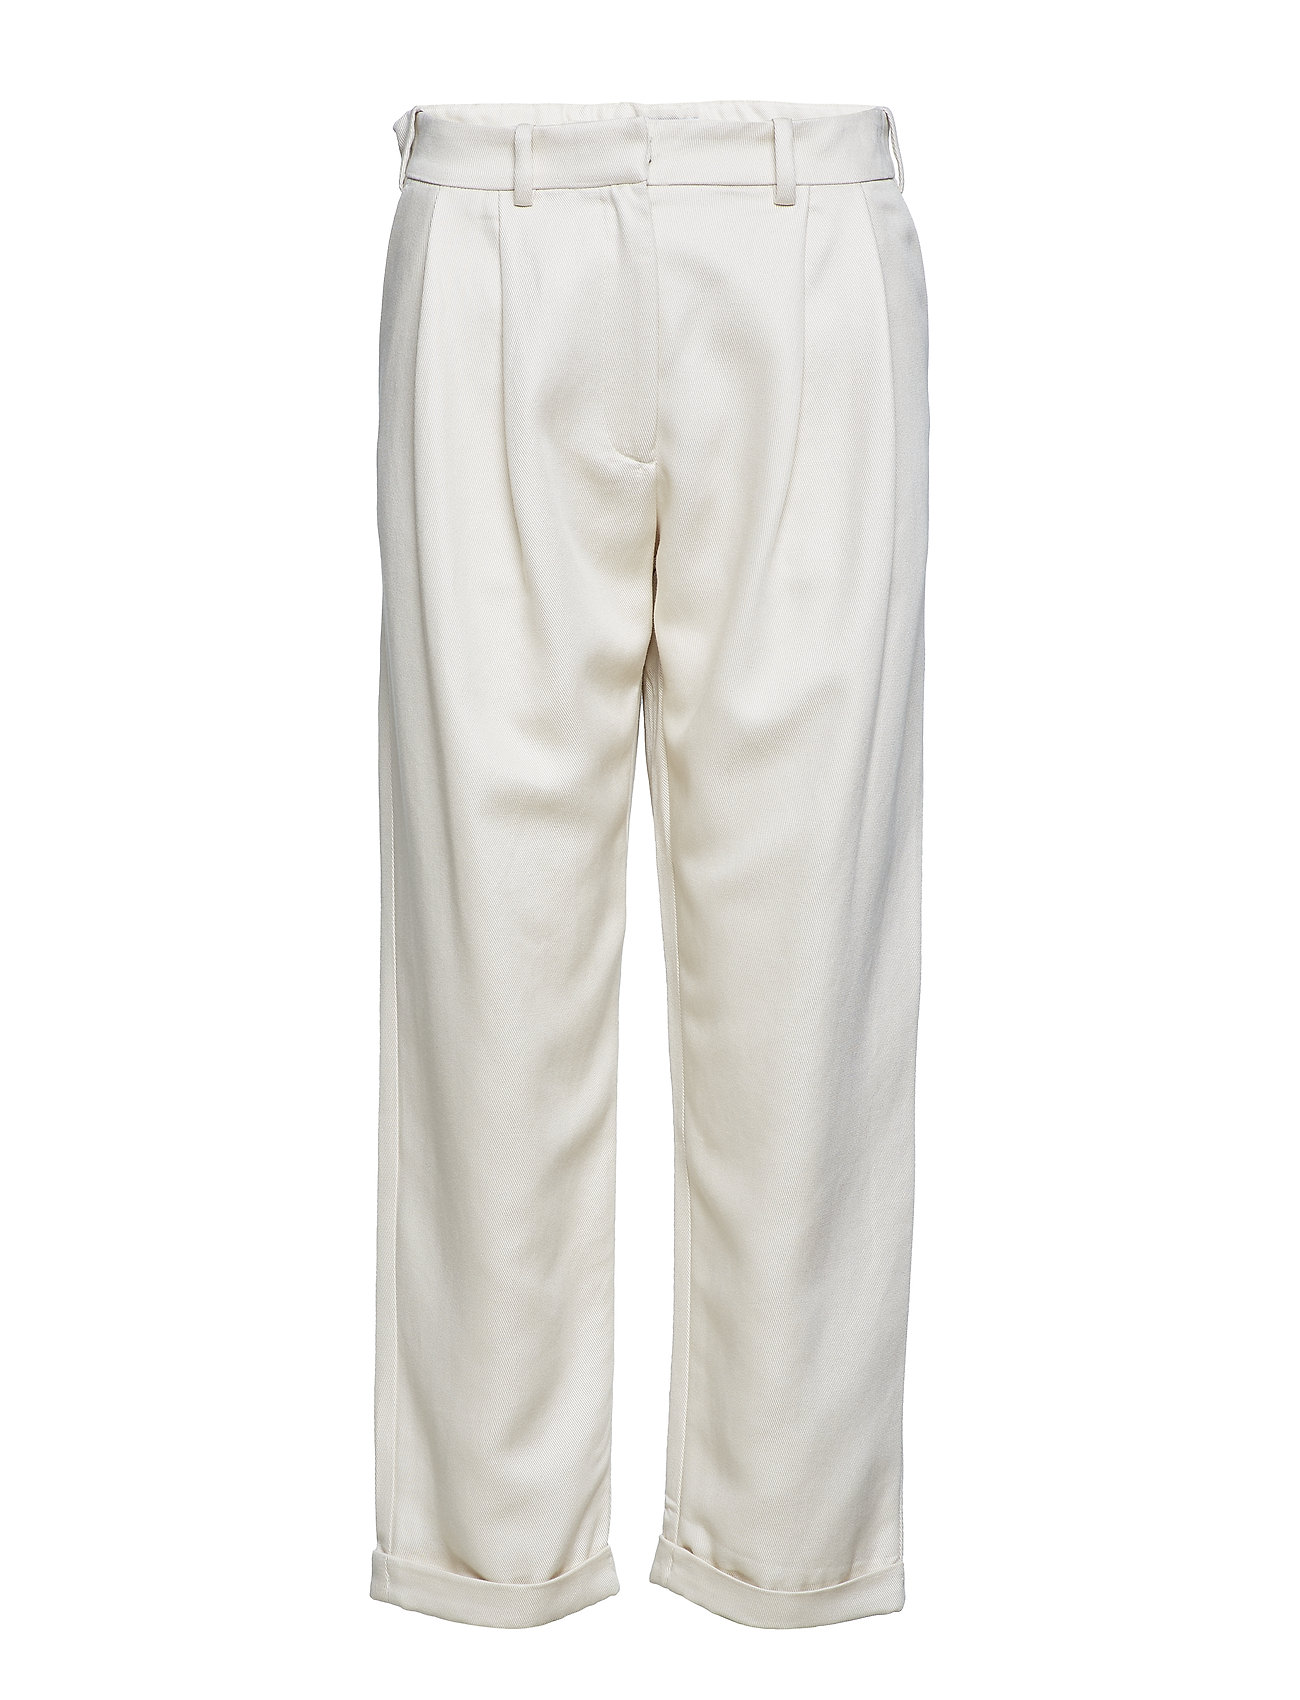 Samsøe & Samsøe Delaun pants 10651 - SEA SALT